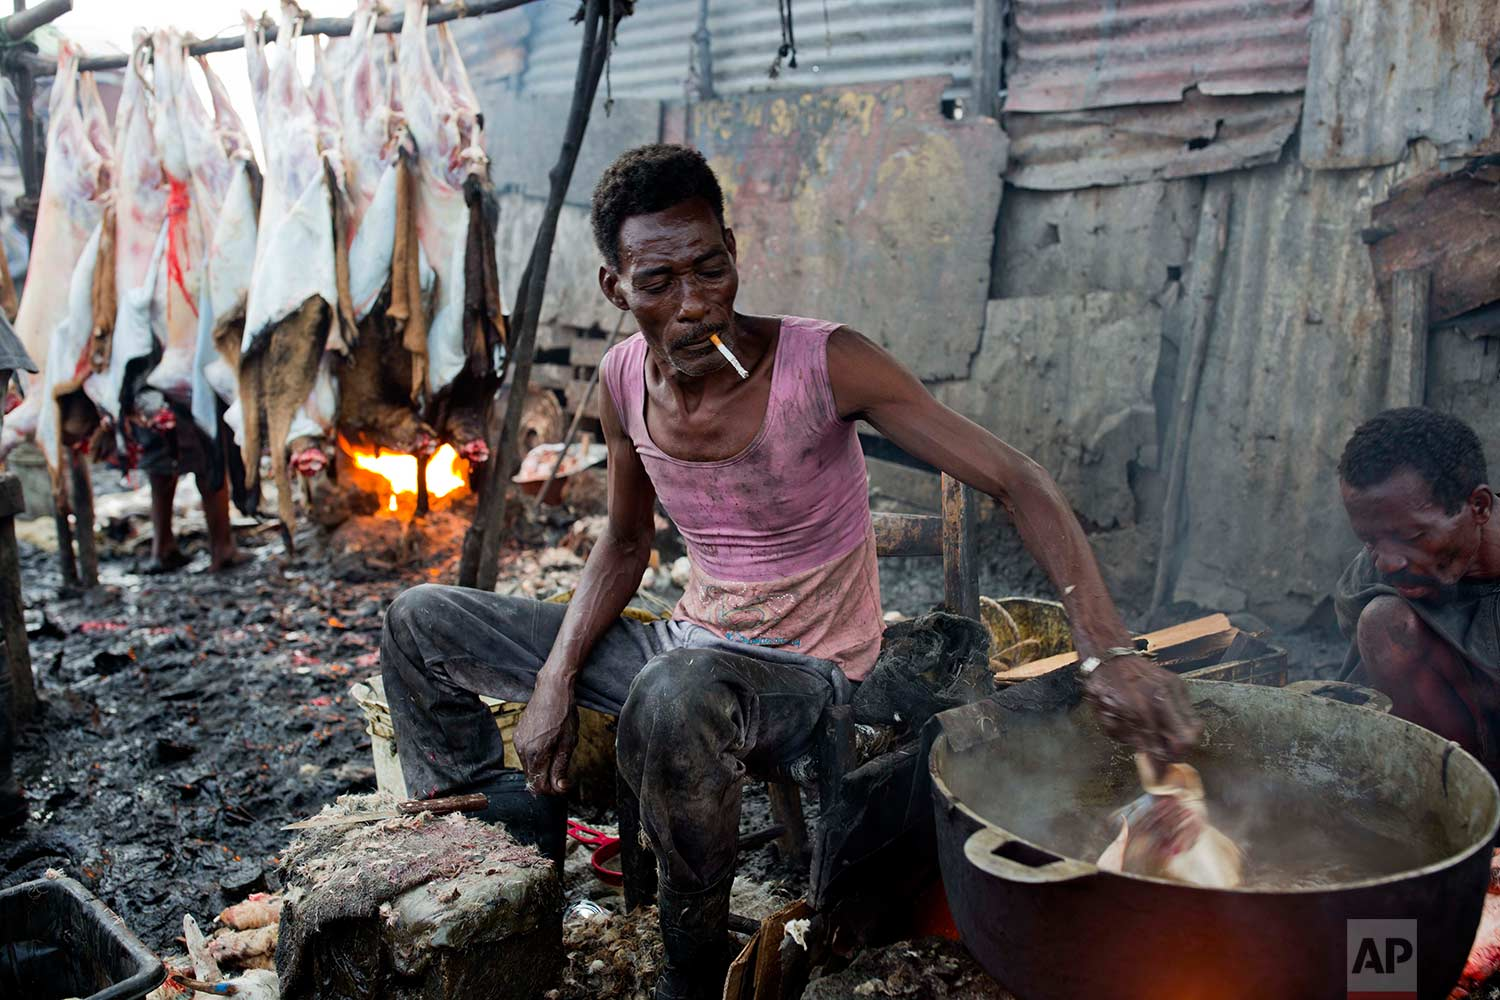 "In this Nov. 9, 2017 photo, Gesner Sagaille stirs a goat's head in a pot of boiling water to remove its hair, at the La Saline meat market in Port-au-Prince, Haiti. ""The market is not only for animals, I am a human being who spends my day inside this market,"" says the 65-year-old who has worked at the market for more than 30 years and wants authorities to provide sanitary facilities. (AP Photo/Dieu Nalio Chery)"